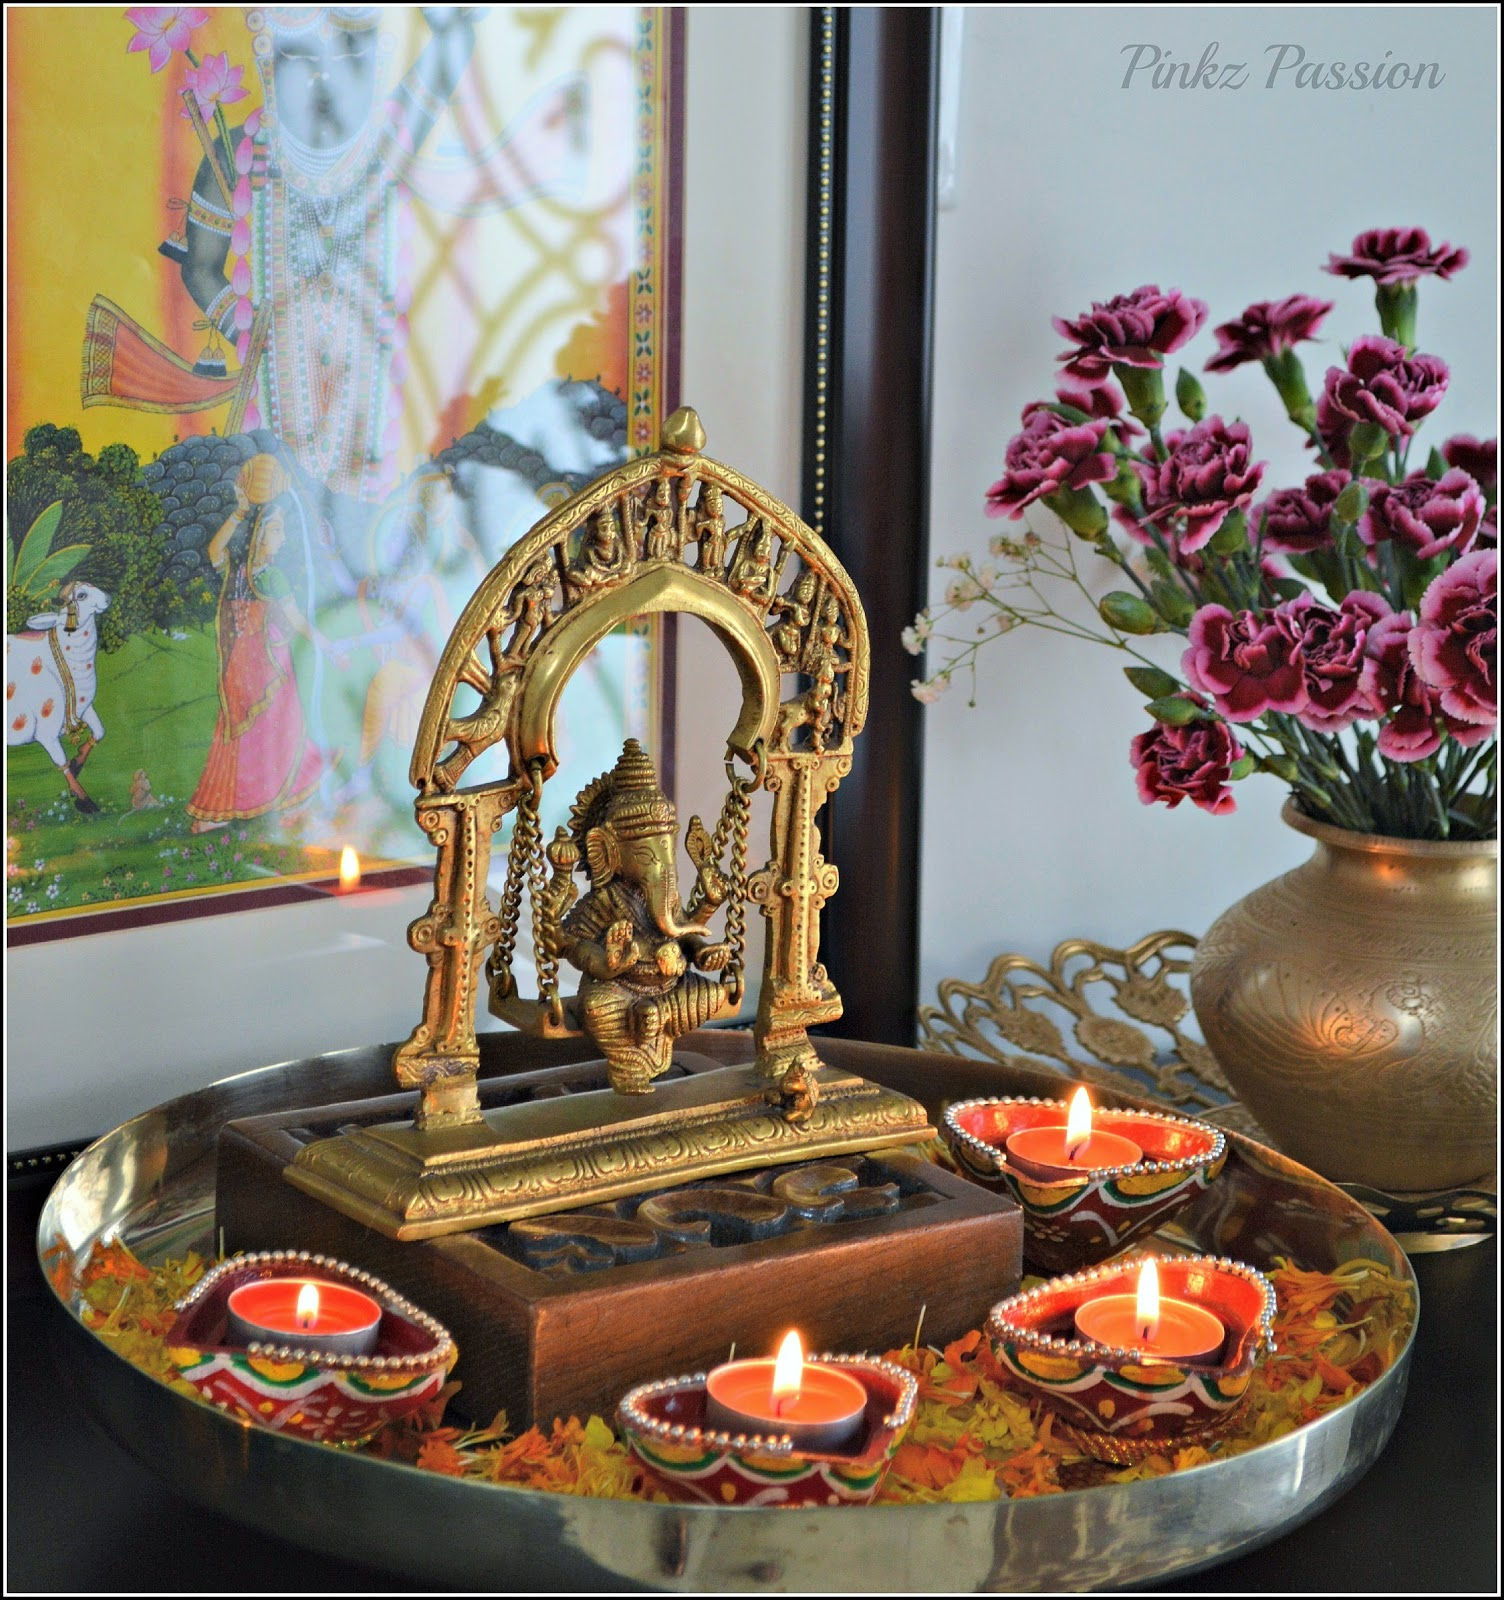 Indian Festival Decoration Pinkz Passion Festival Of Lights Diwali Decor 1